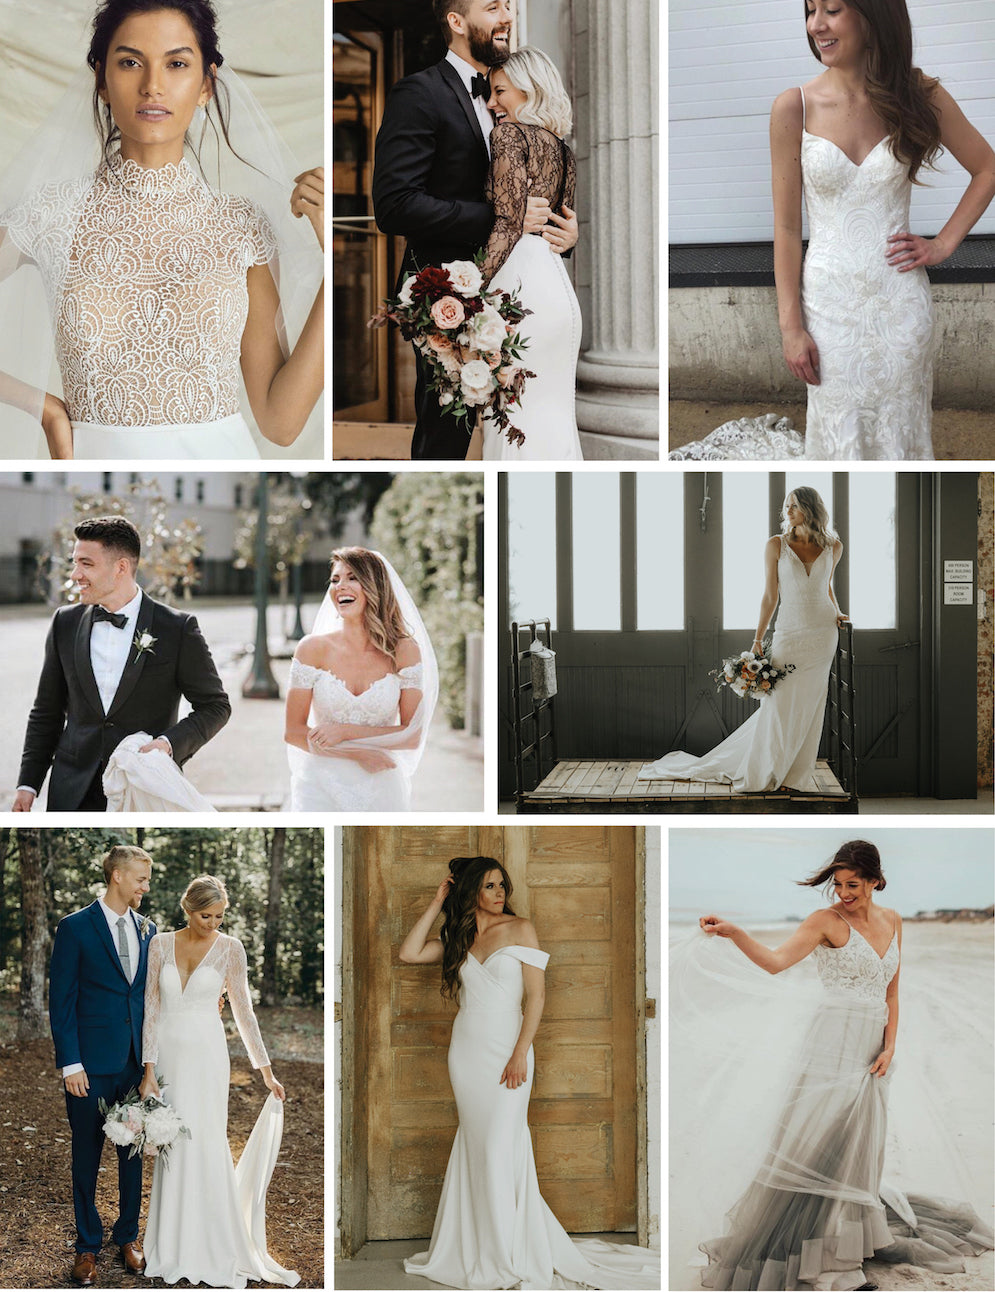 Kelly Faetanini wedding dresses